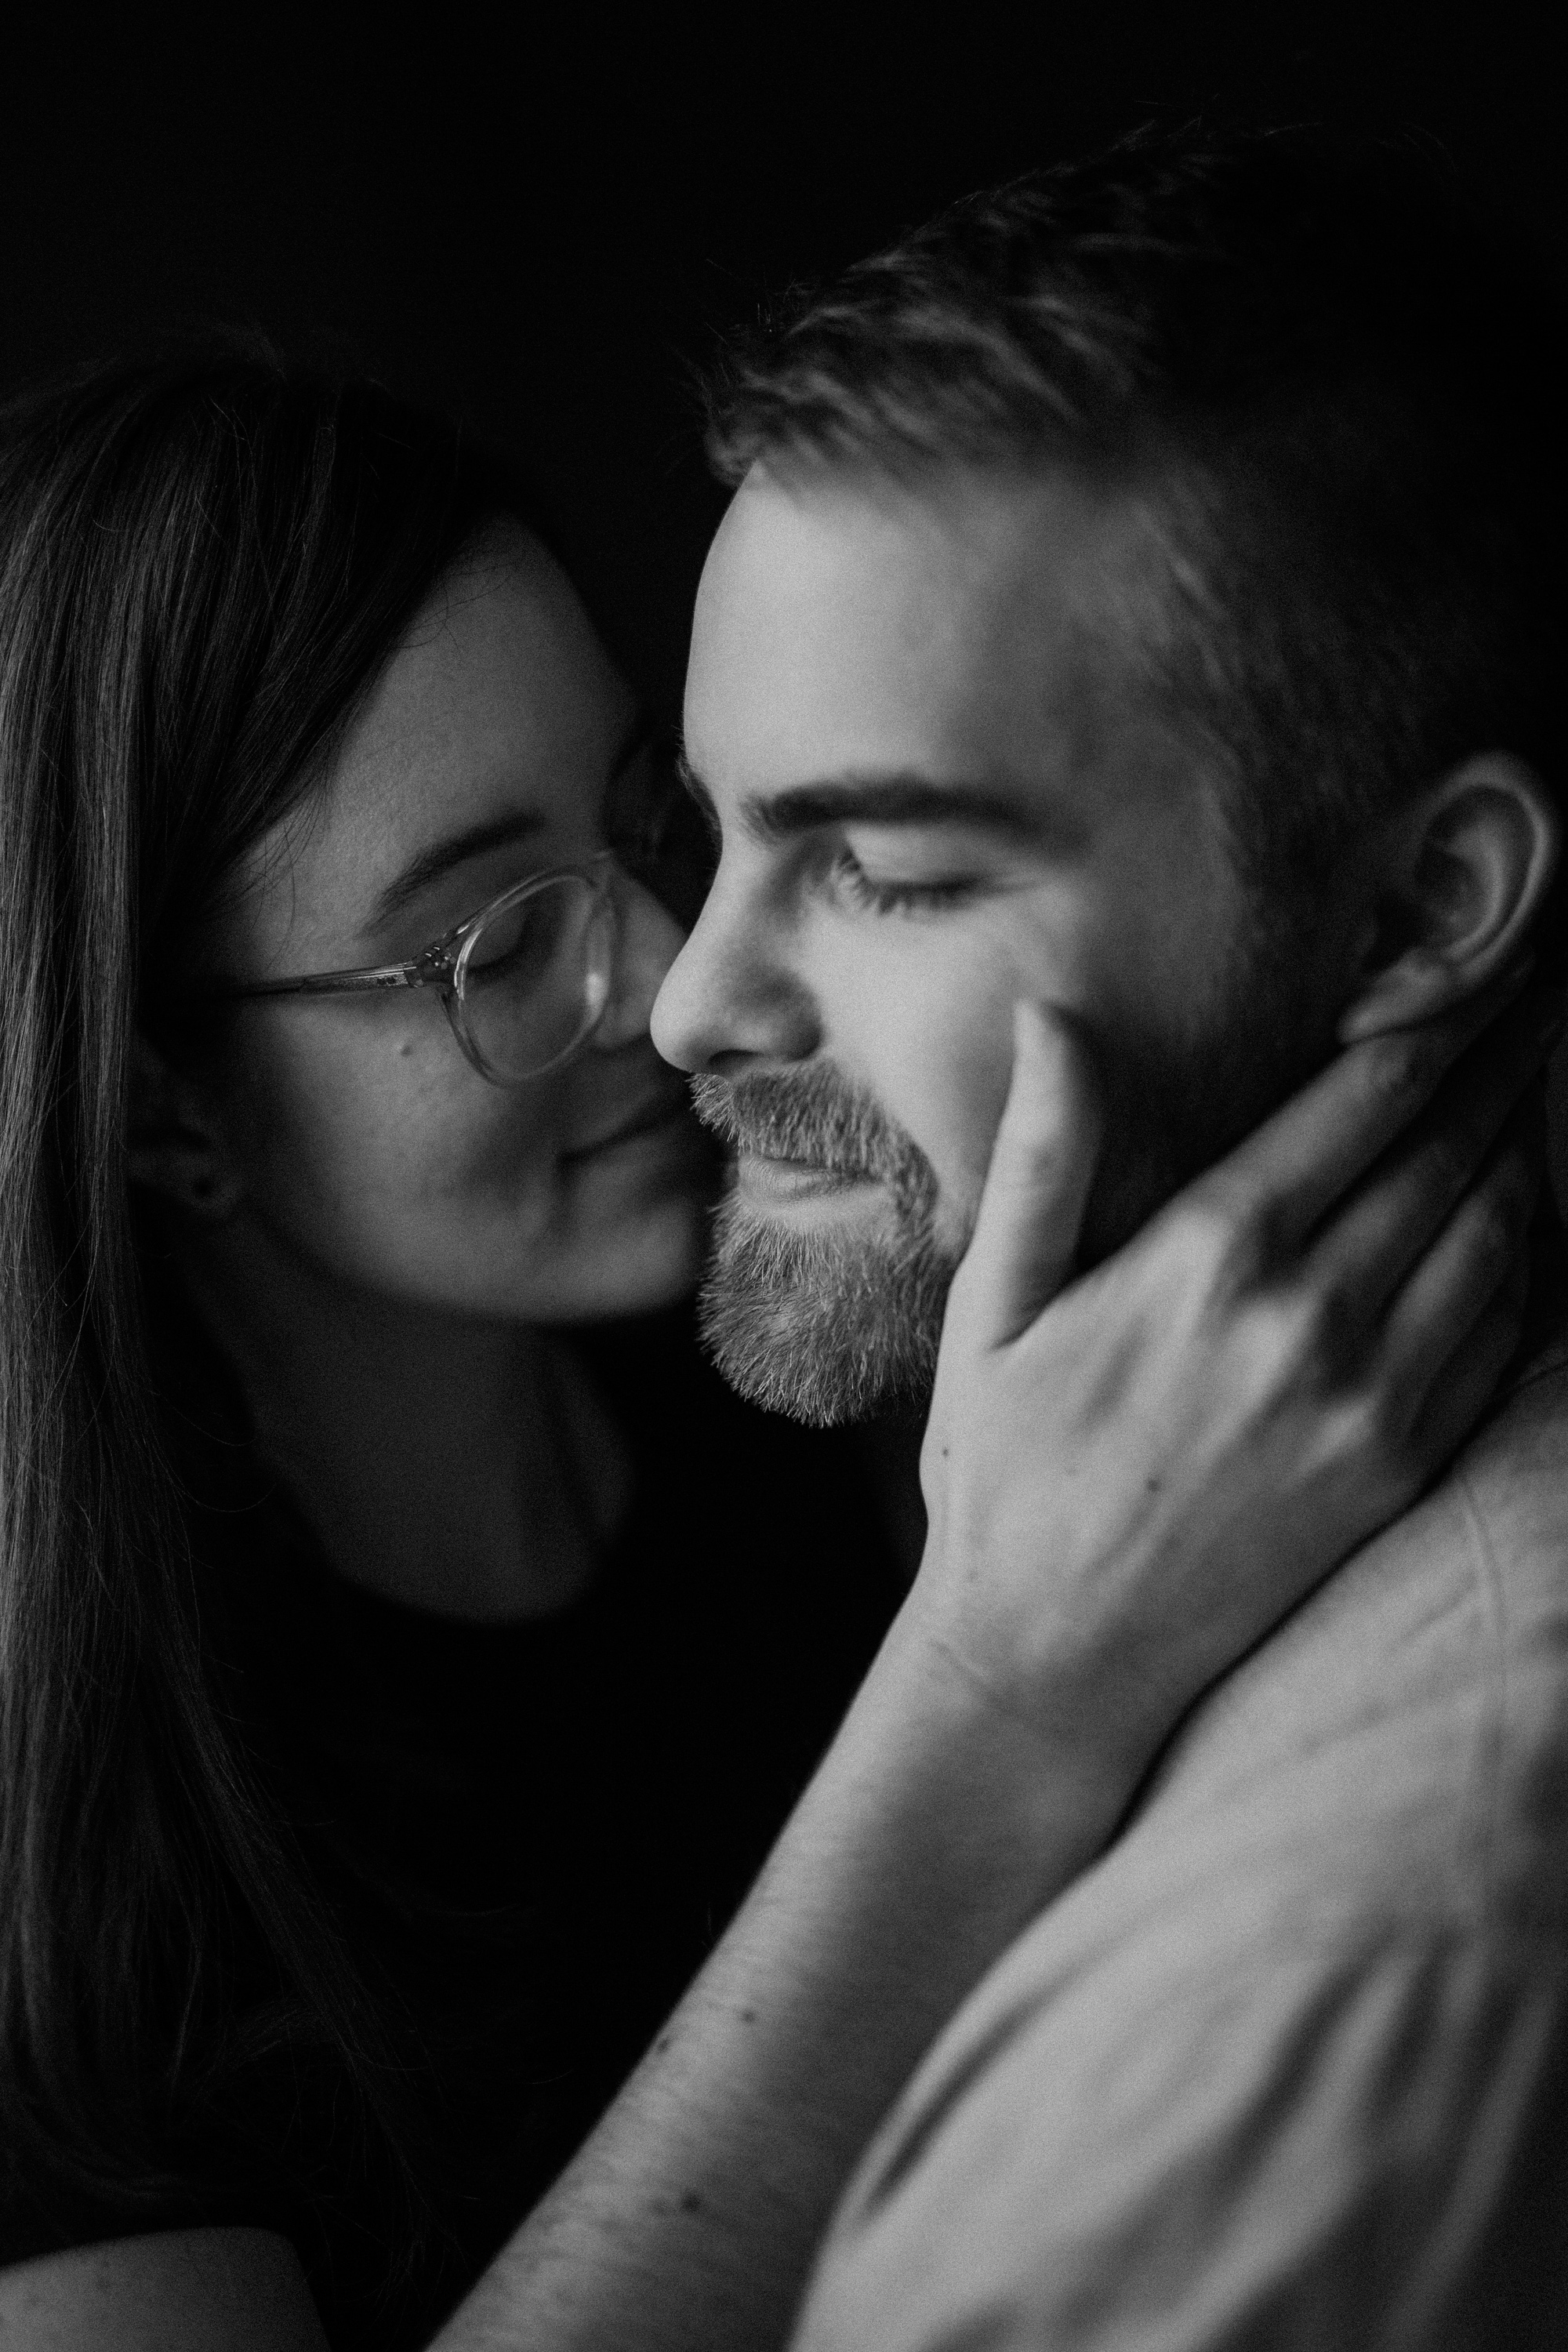 chicago_engagement_photography_0198.jpg